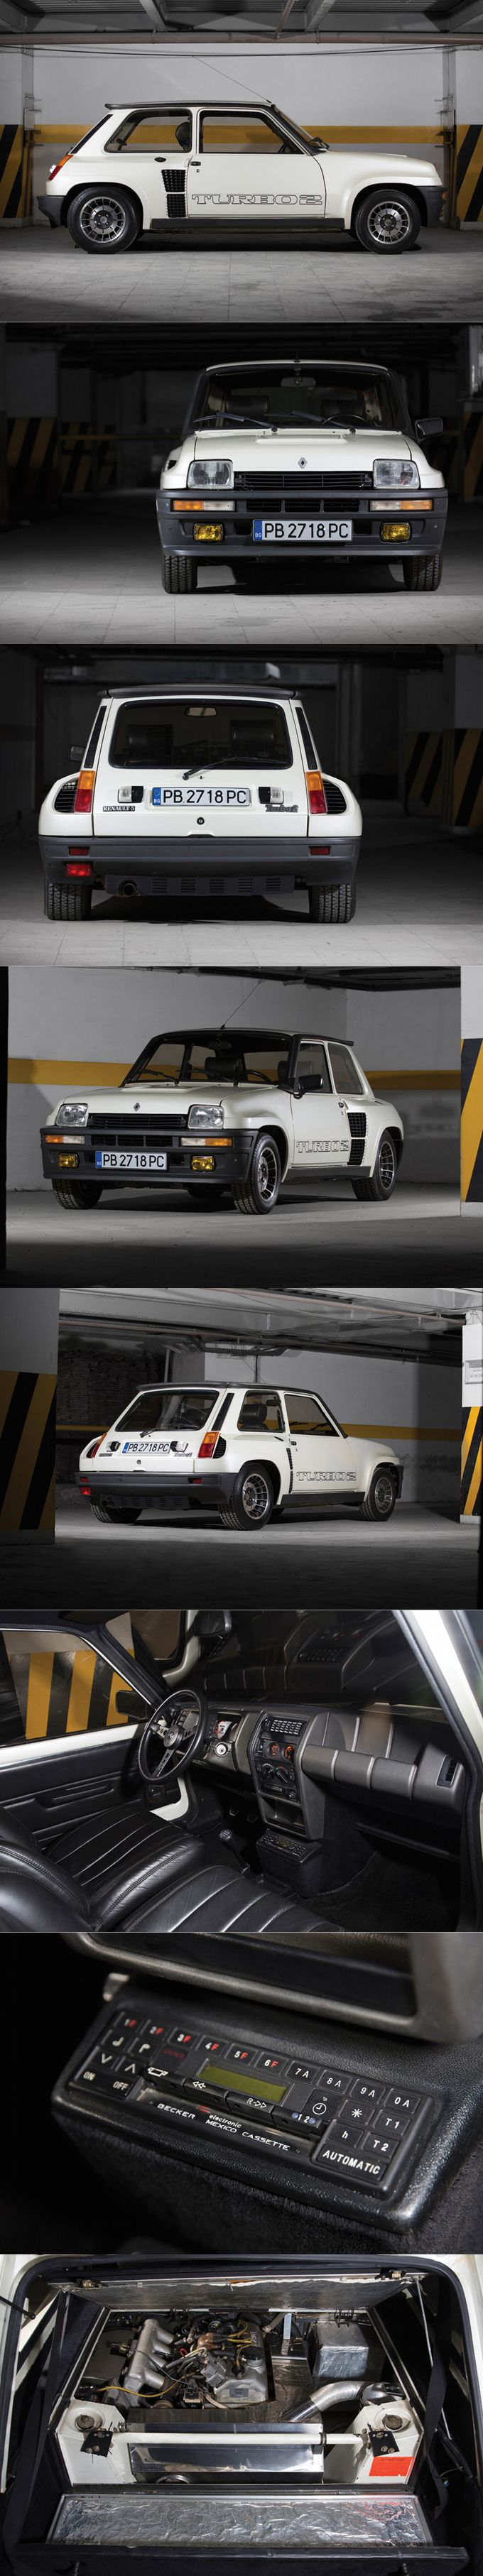 1983 Renault 5 Turbo II / homologation WRC / 158hp / white / France / Marcello Gandini http://amzn.to/2sAXIva